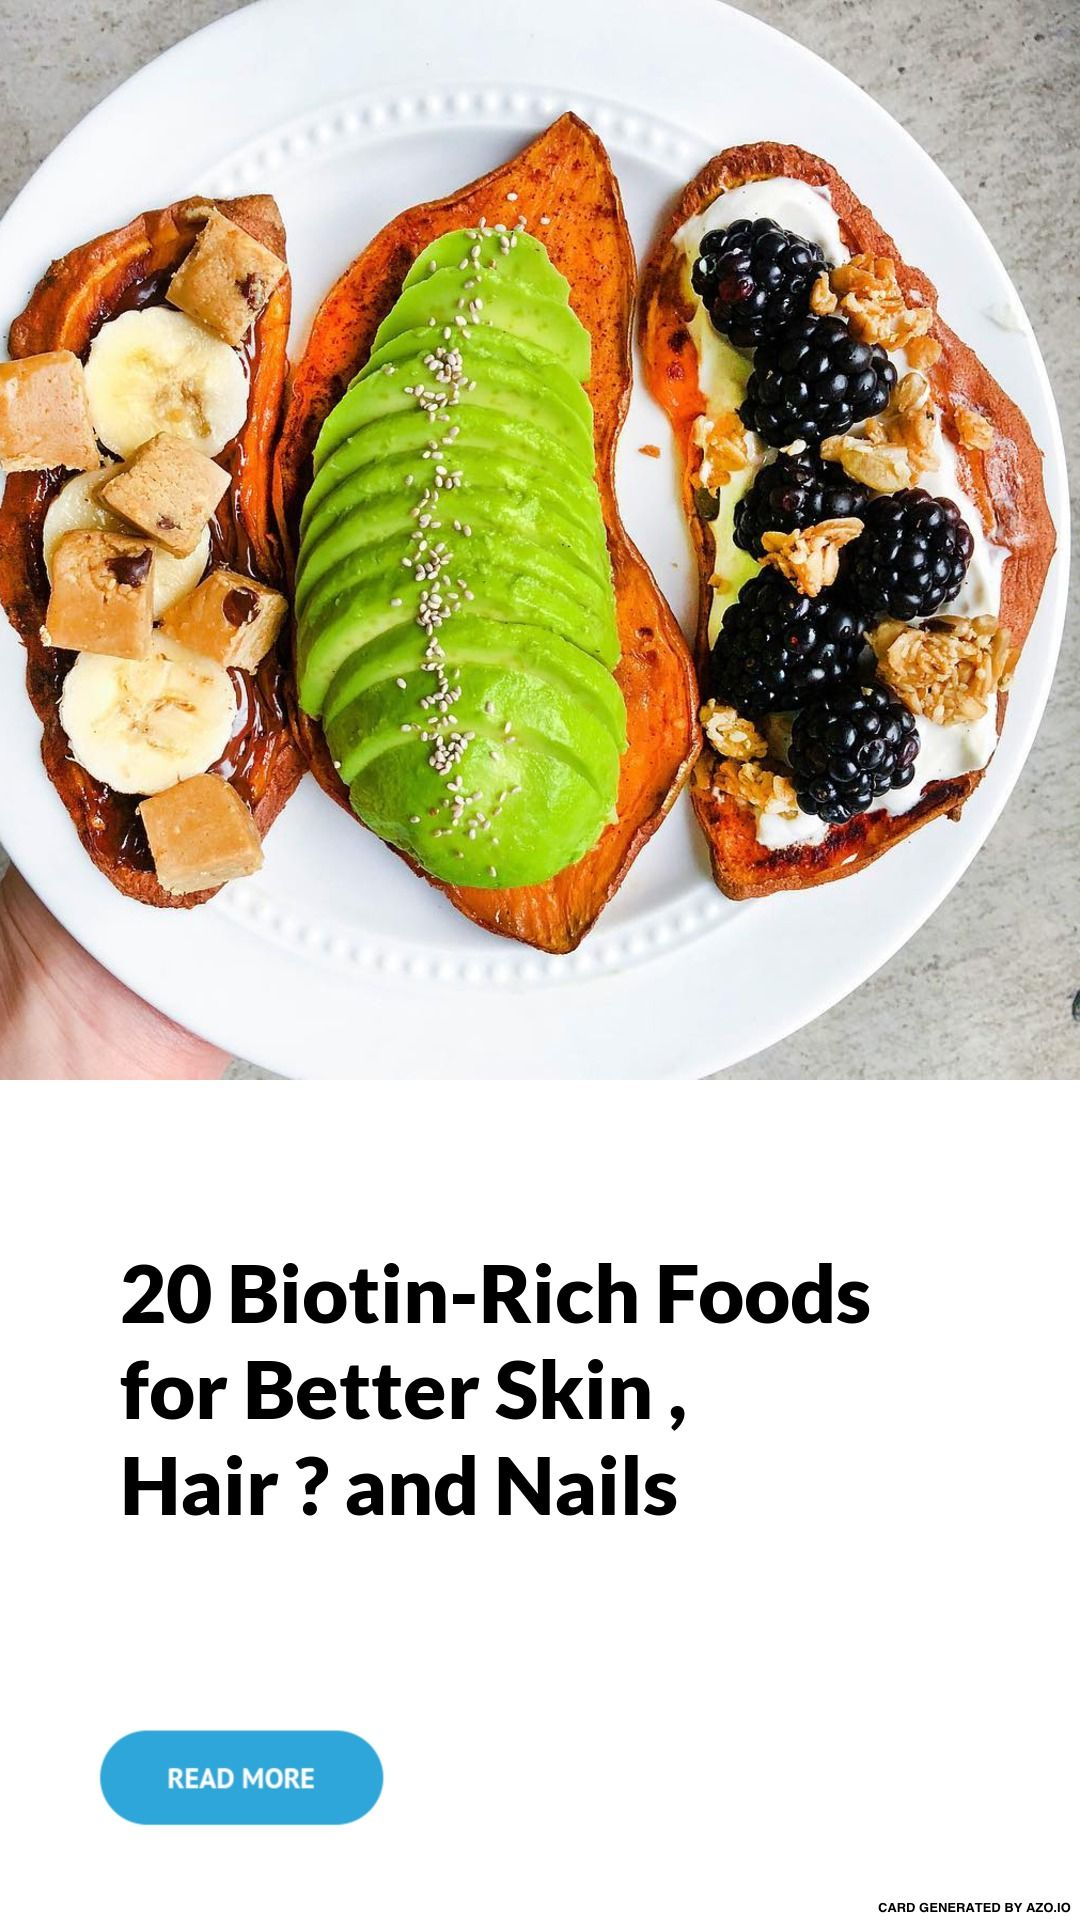 20 #Biotin-Rich 💊 #Foods 🍽 for #Better Skin 👩, #Hair 💇 ♀ and ...